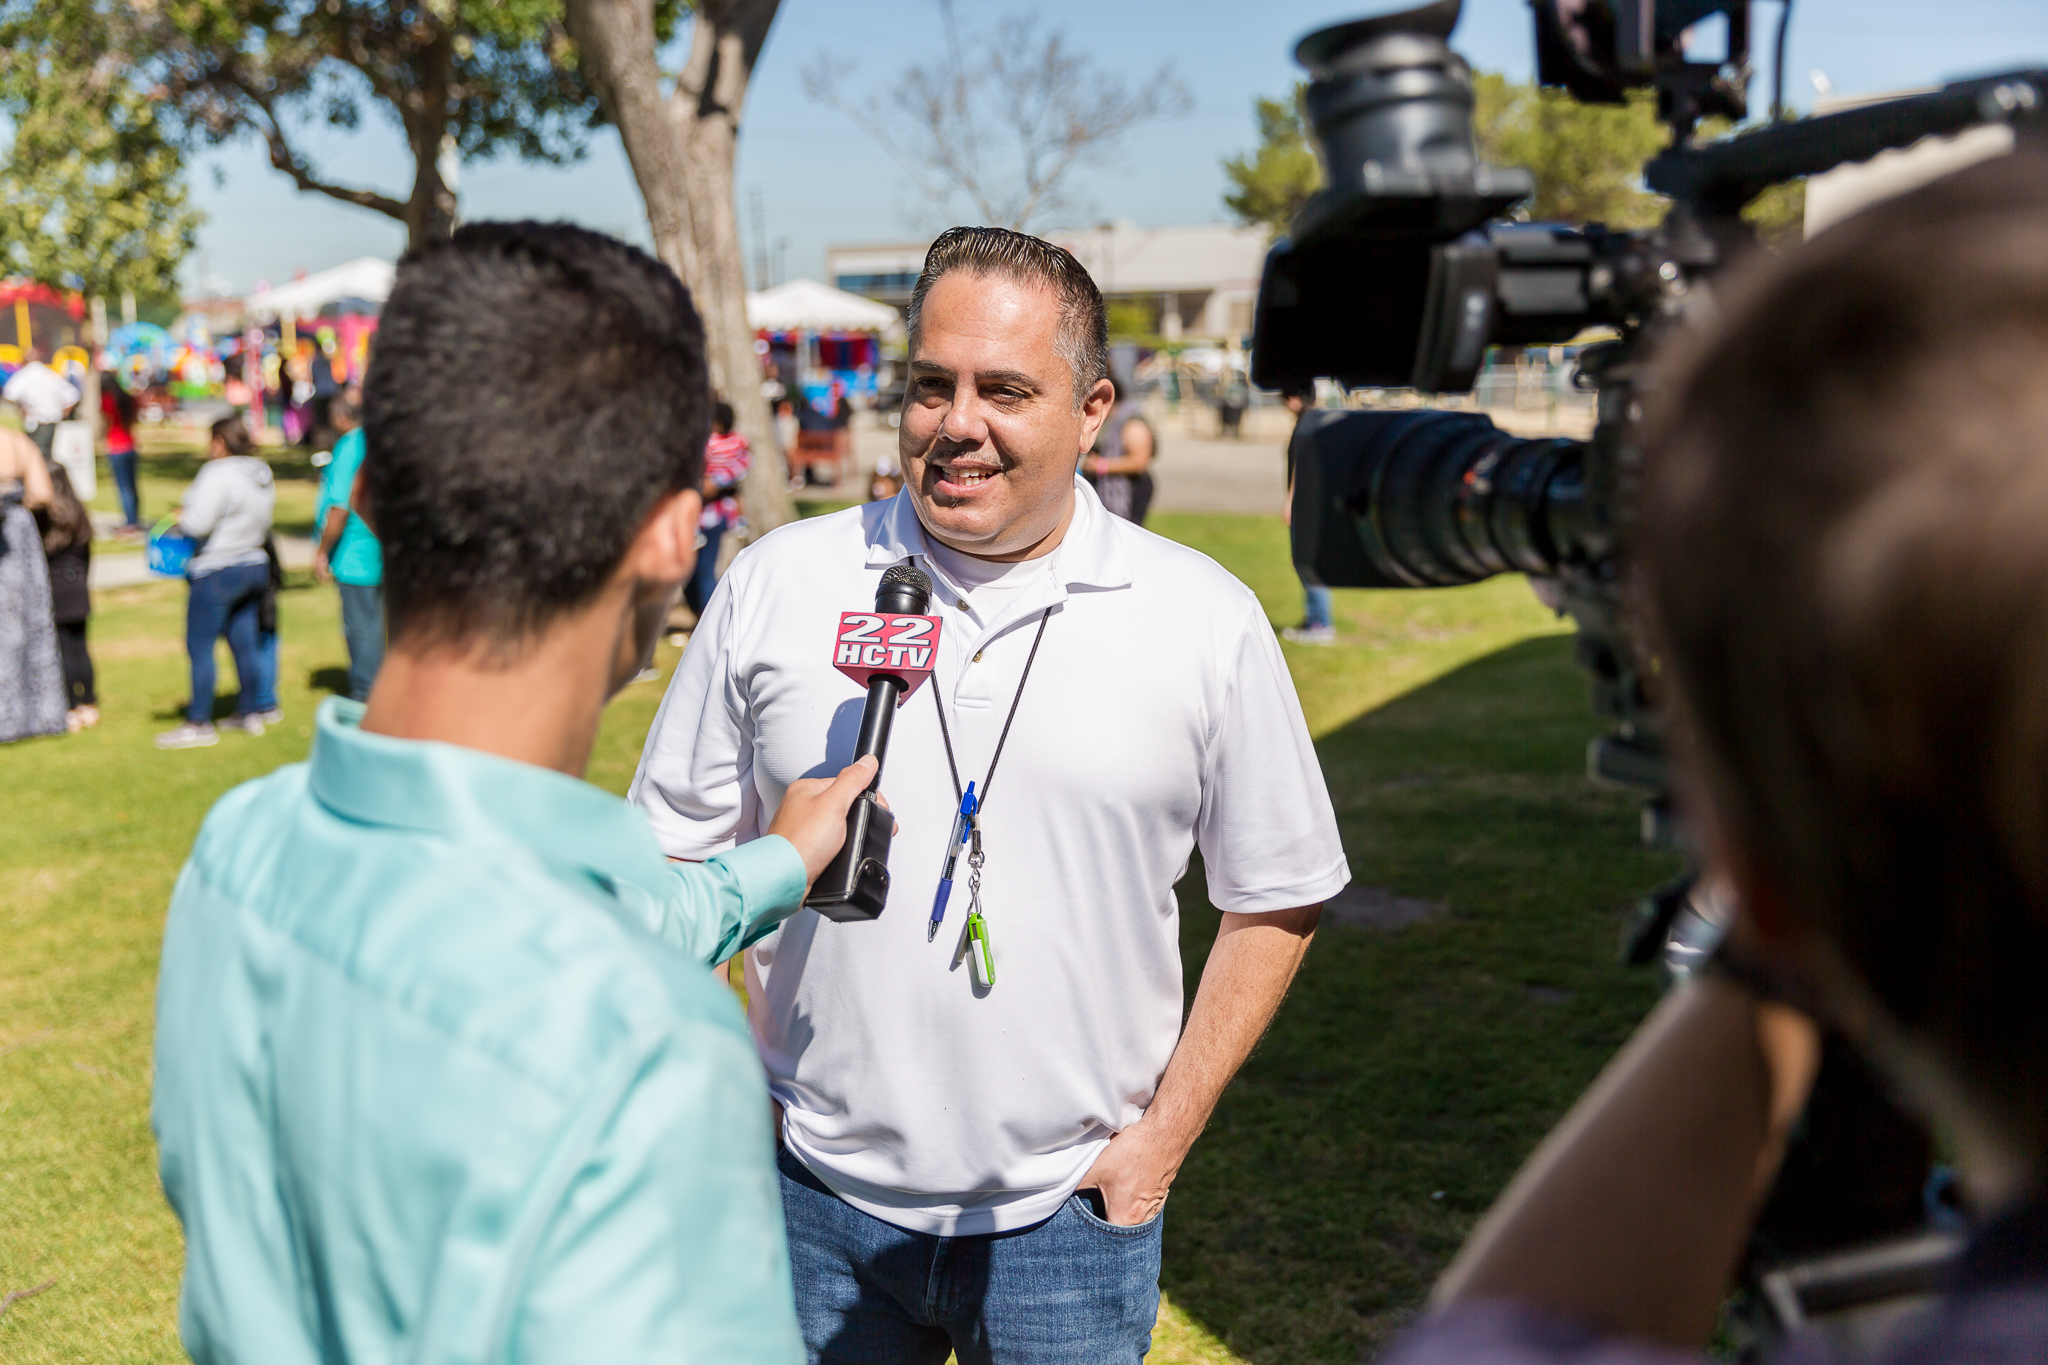 Interview with Mayor Alex Vargas